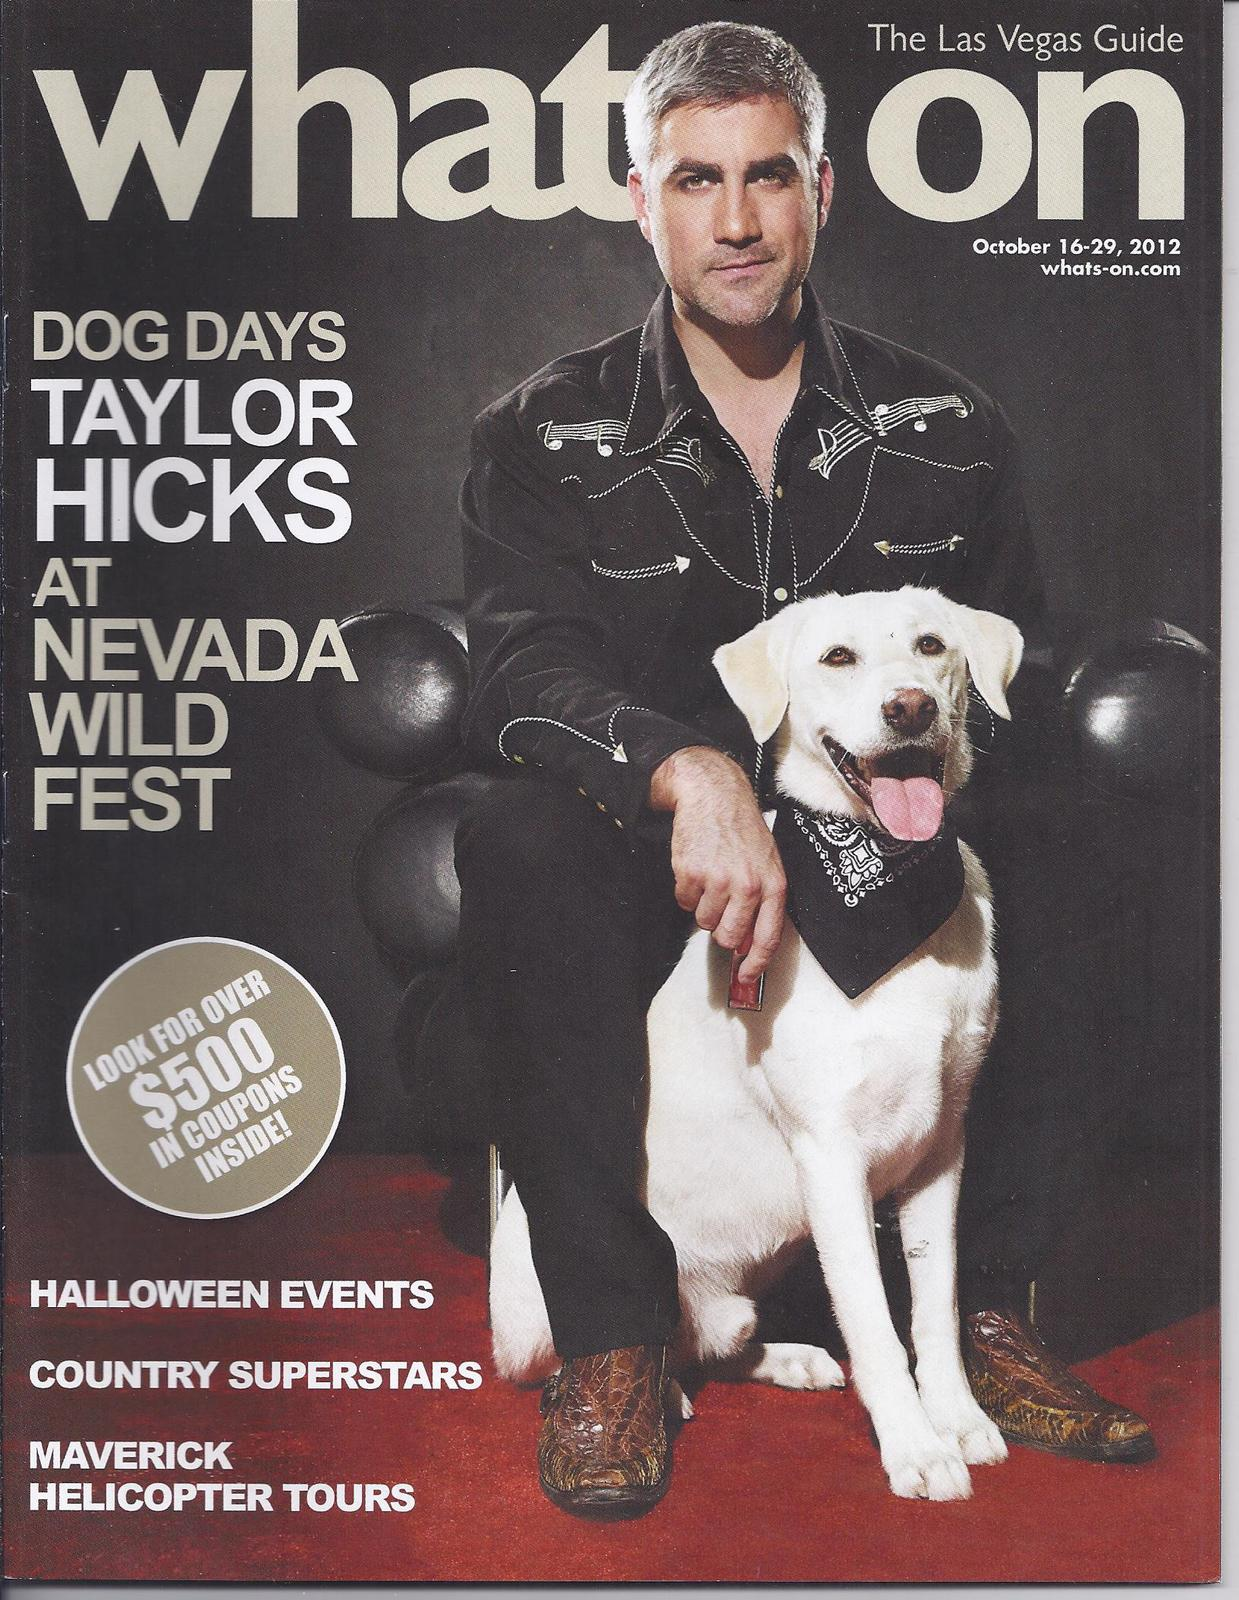 Dog days taylor hicks whats on las vegas magazine oct for Dog days las vegas